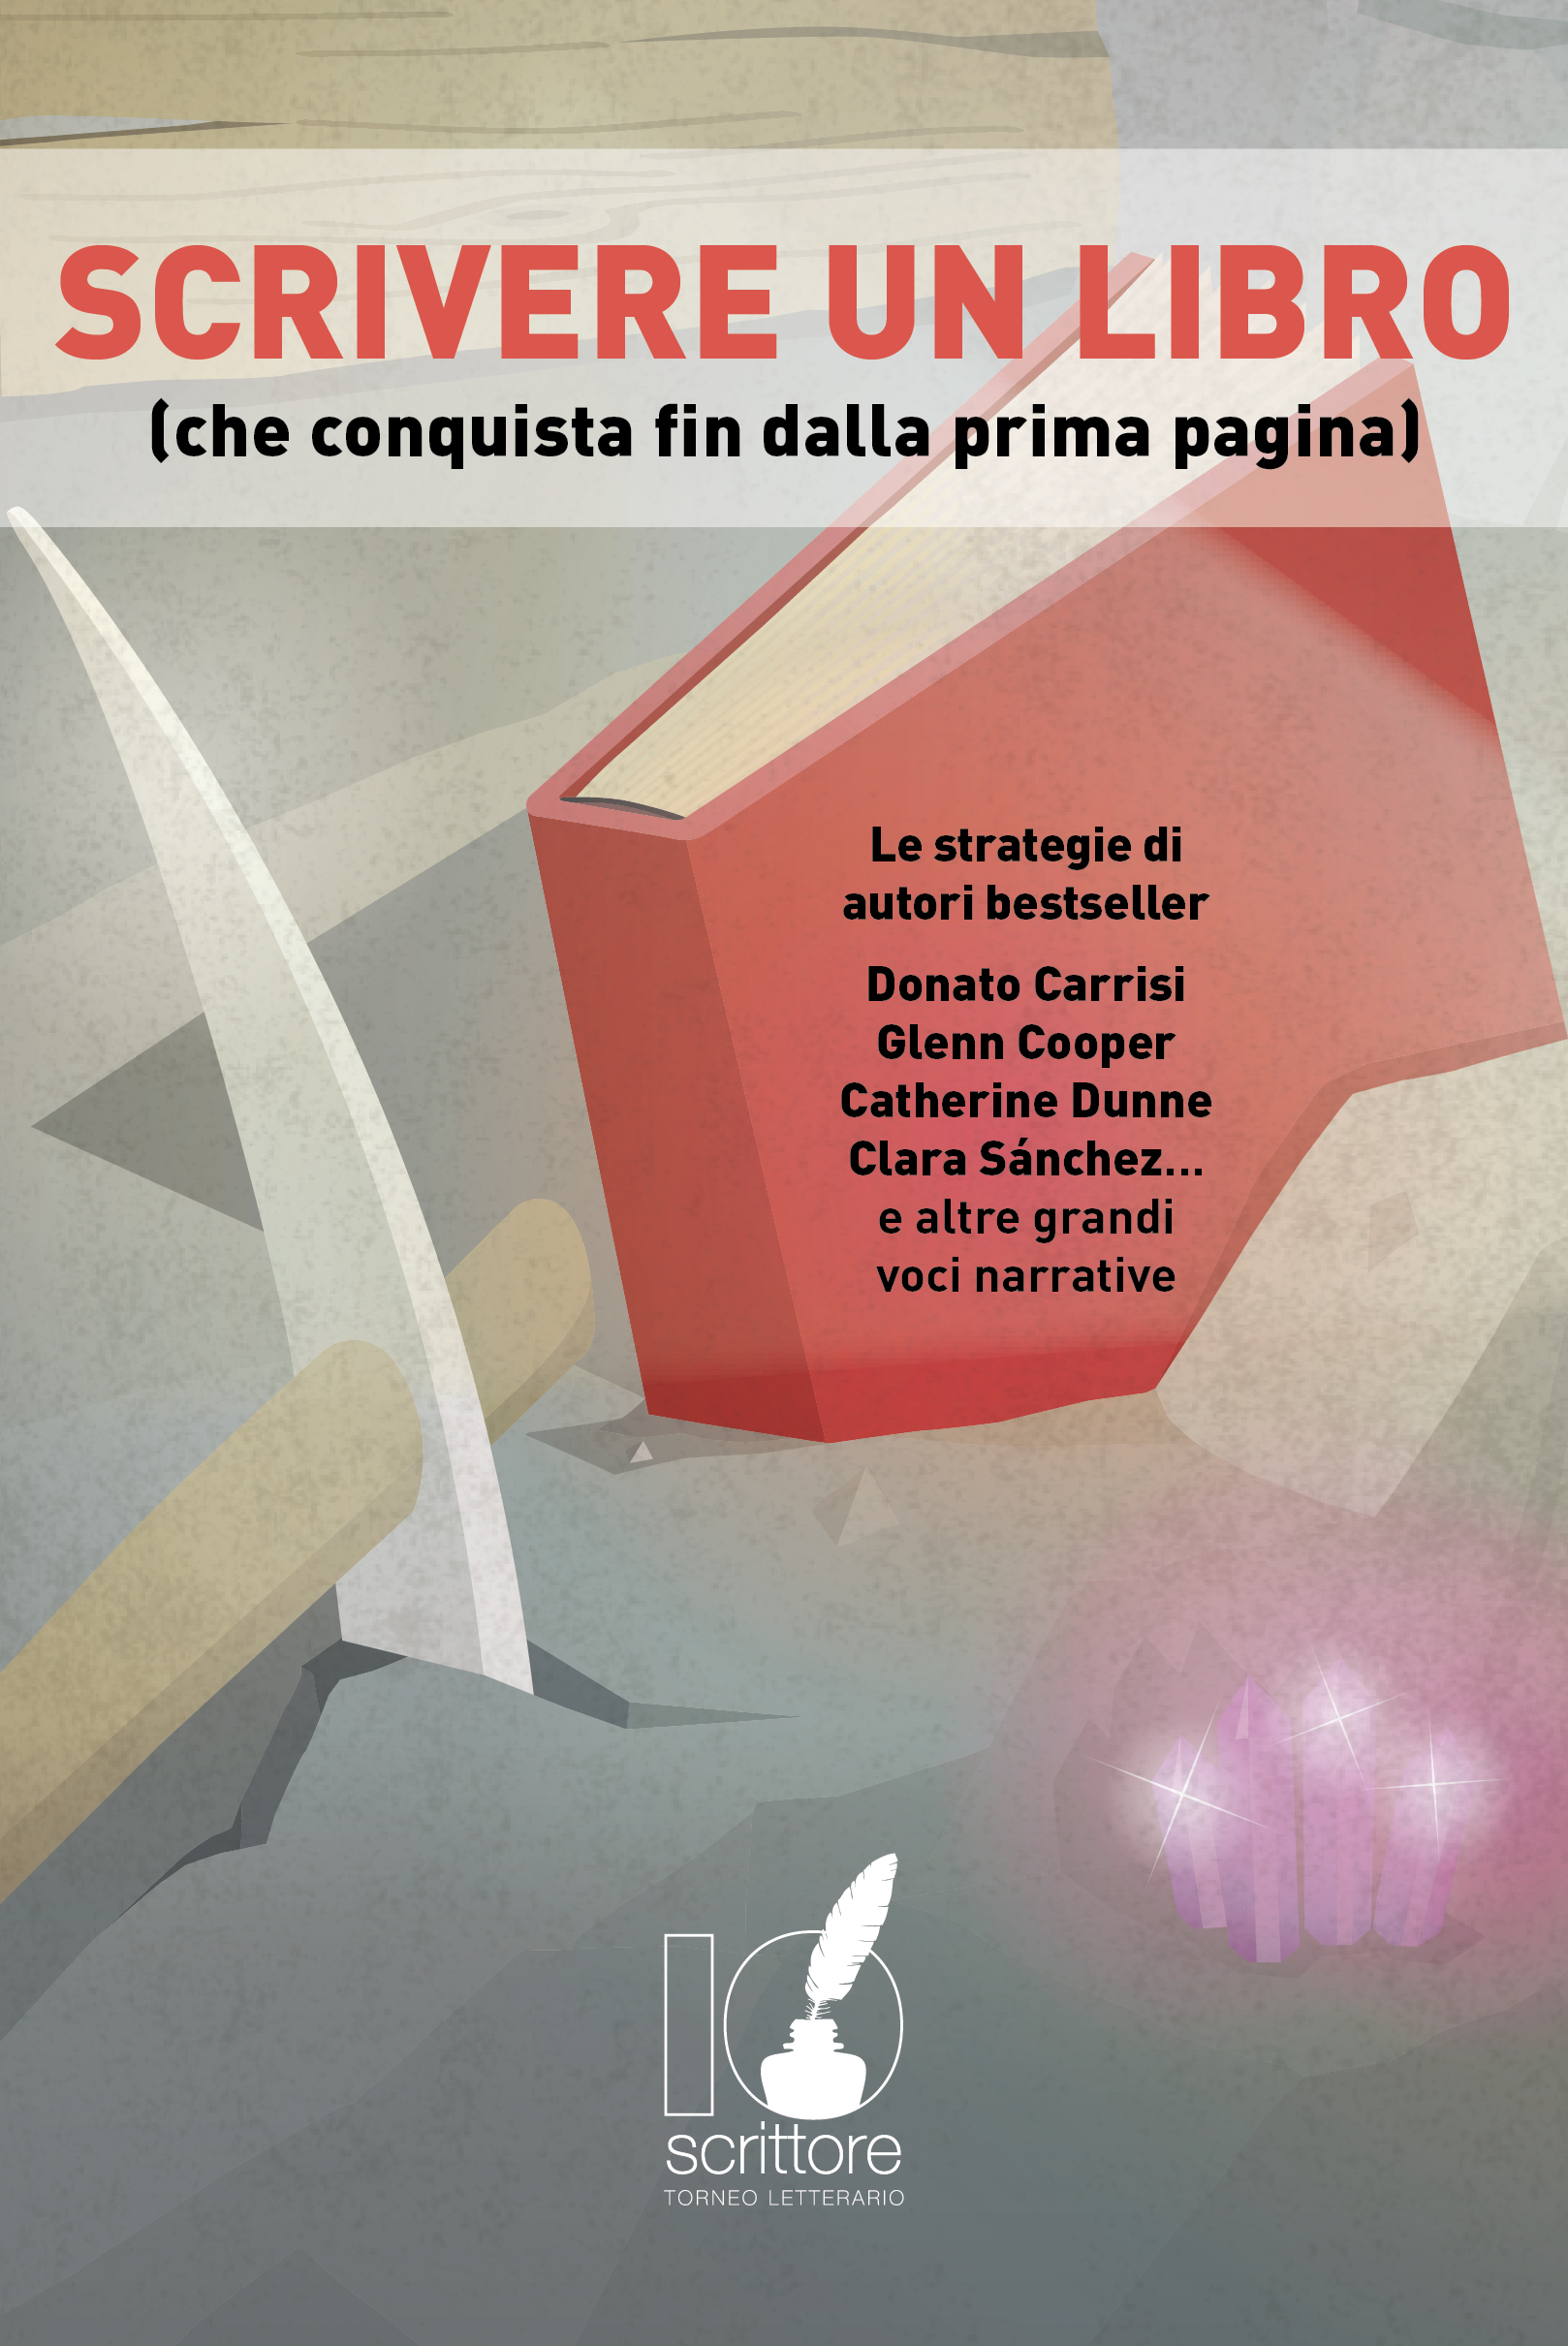 Scrivere un libro che conquista fin dalla prima pagina: Le strategie di grandi autori bestseller.